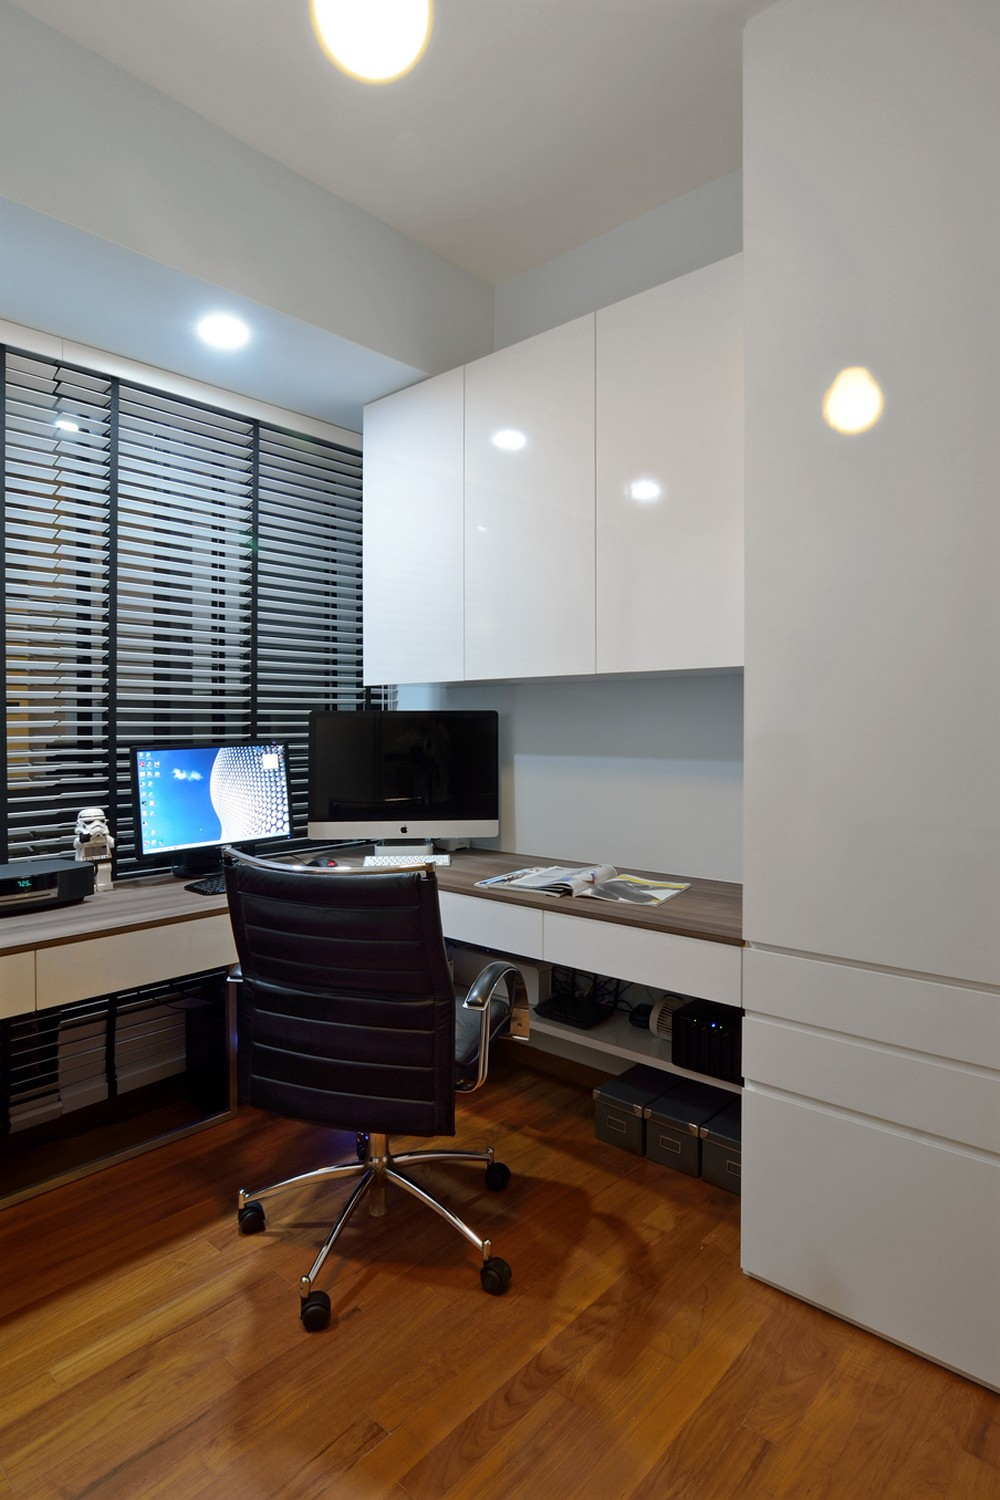 Hdb Study Room Design Ideas: Awesome Minimalist Apartment Design: The Beauty Of